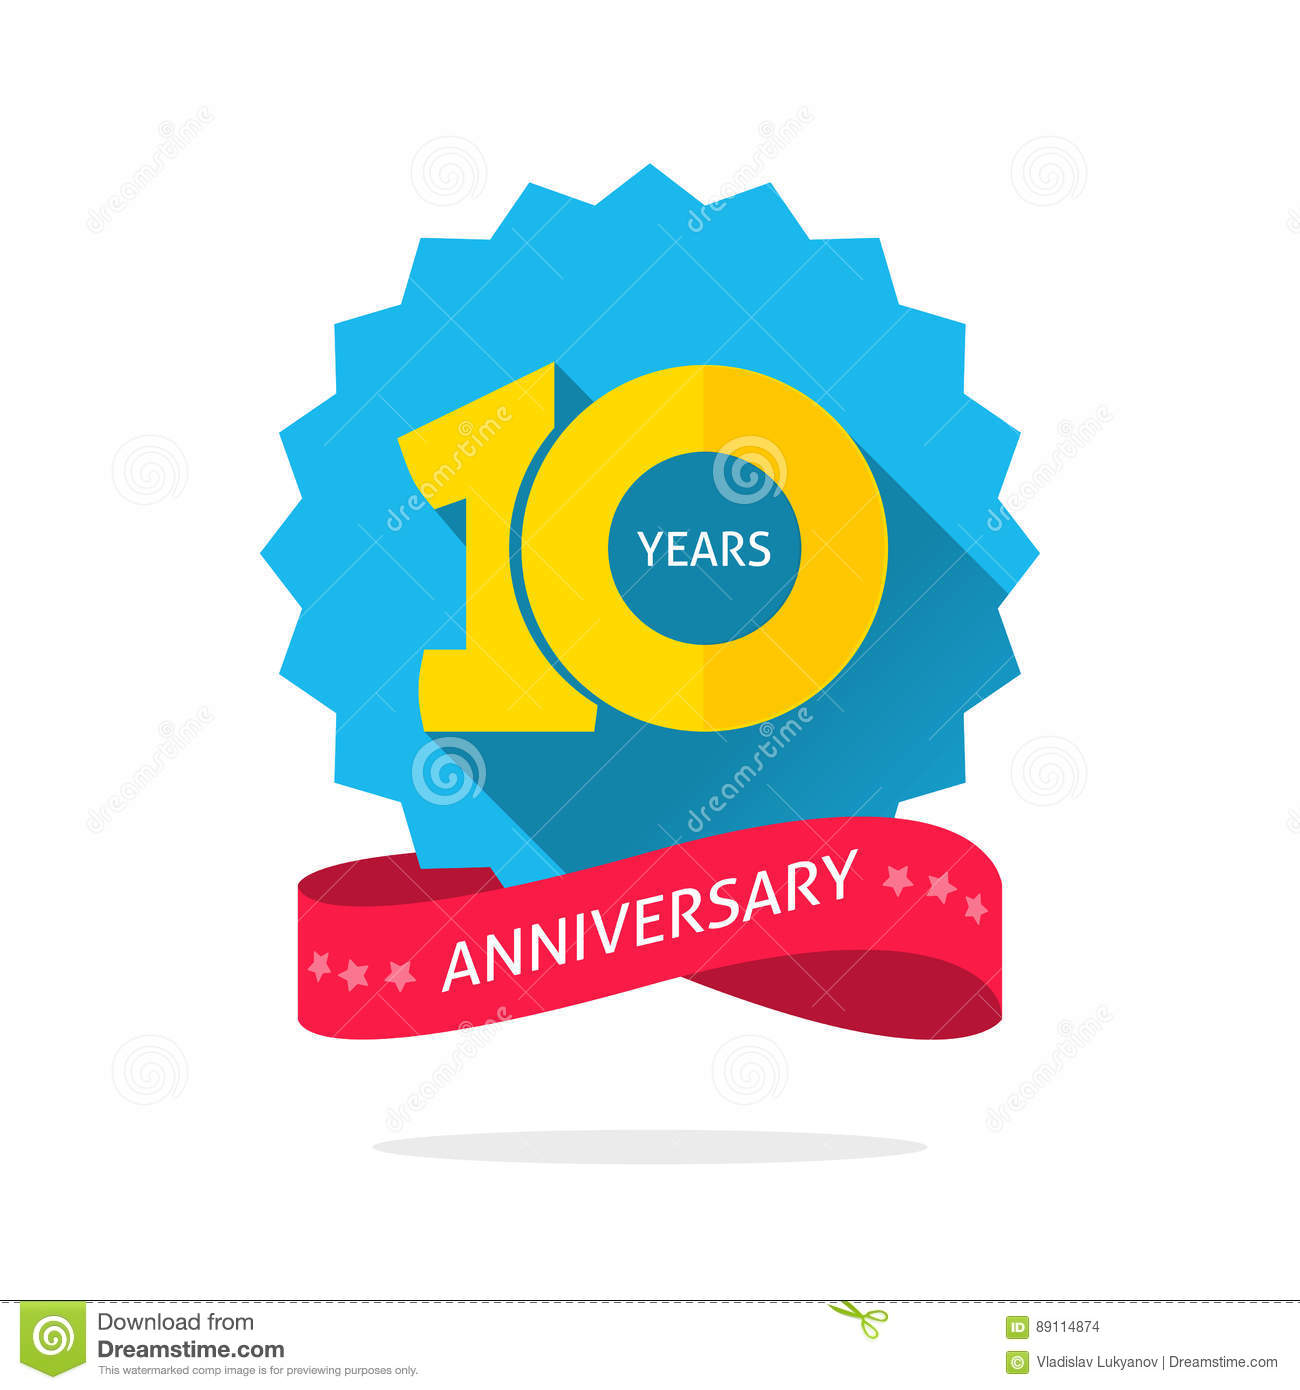 10 Years Anniversary Logo Template With Shadow On Blue